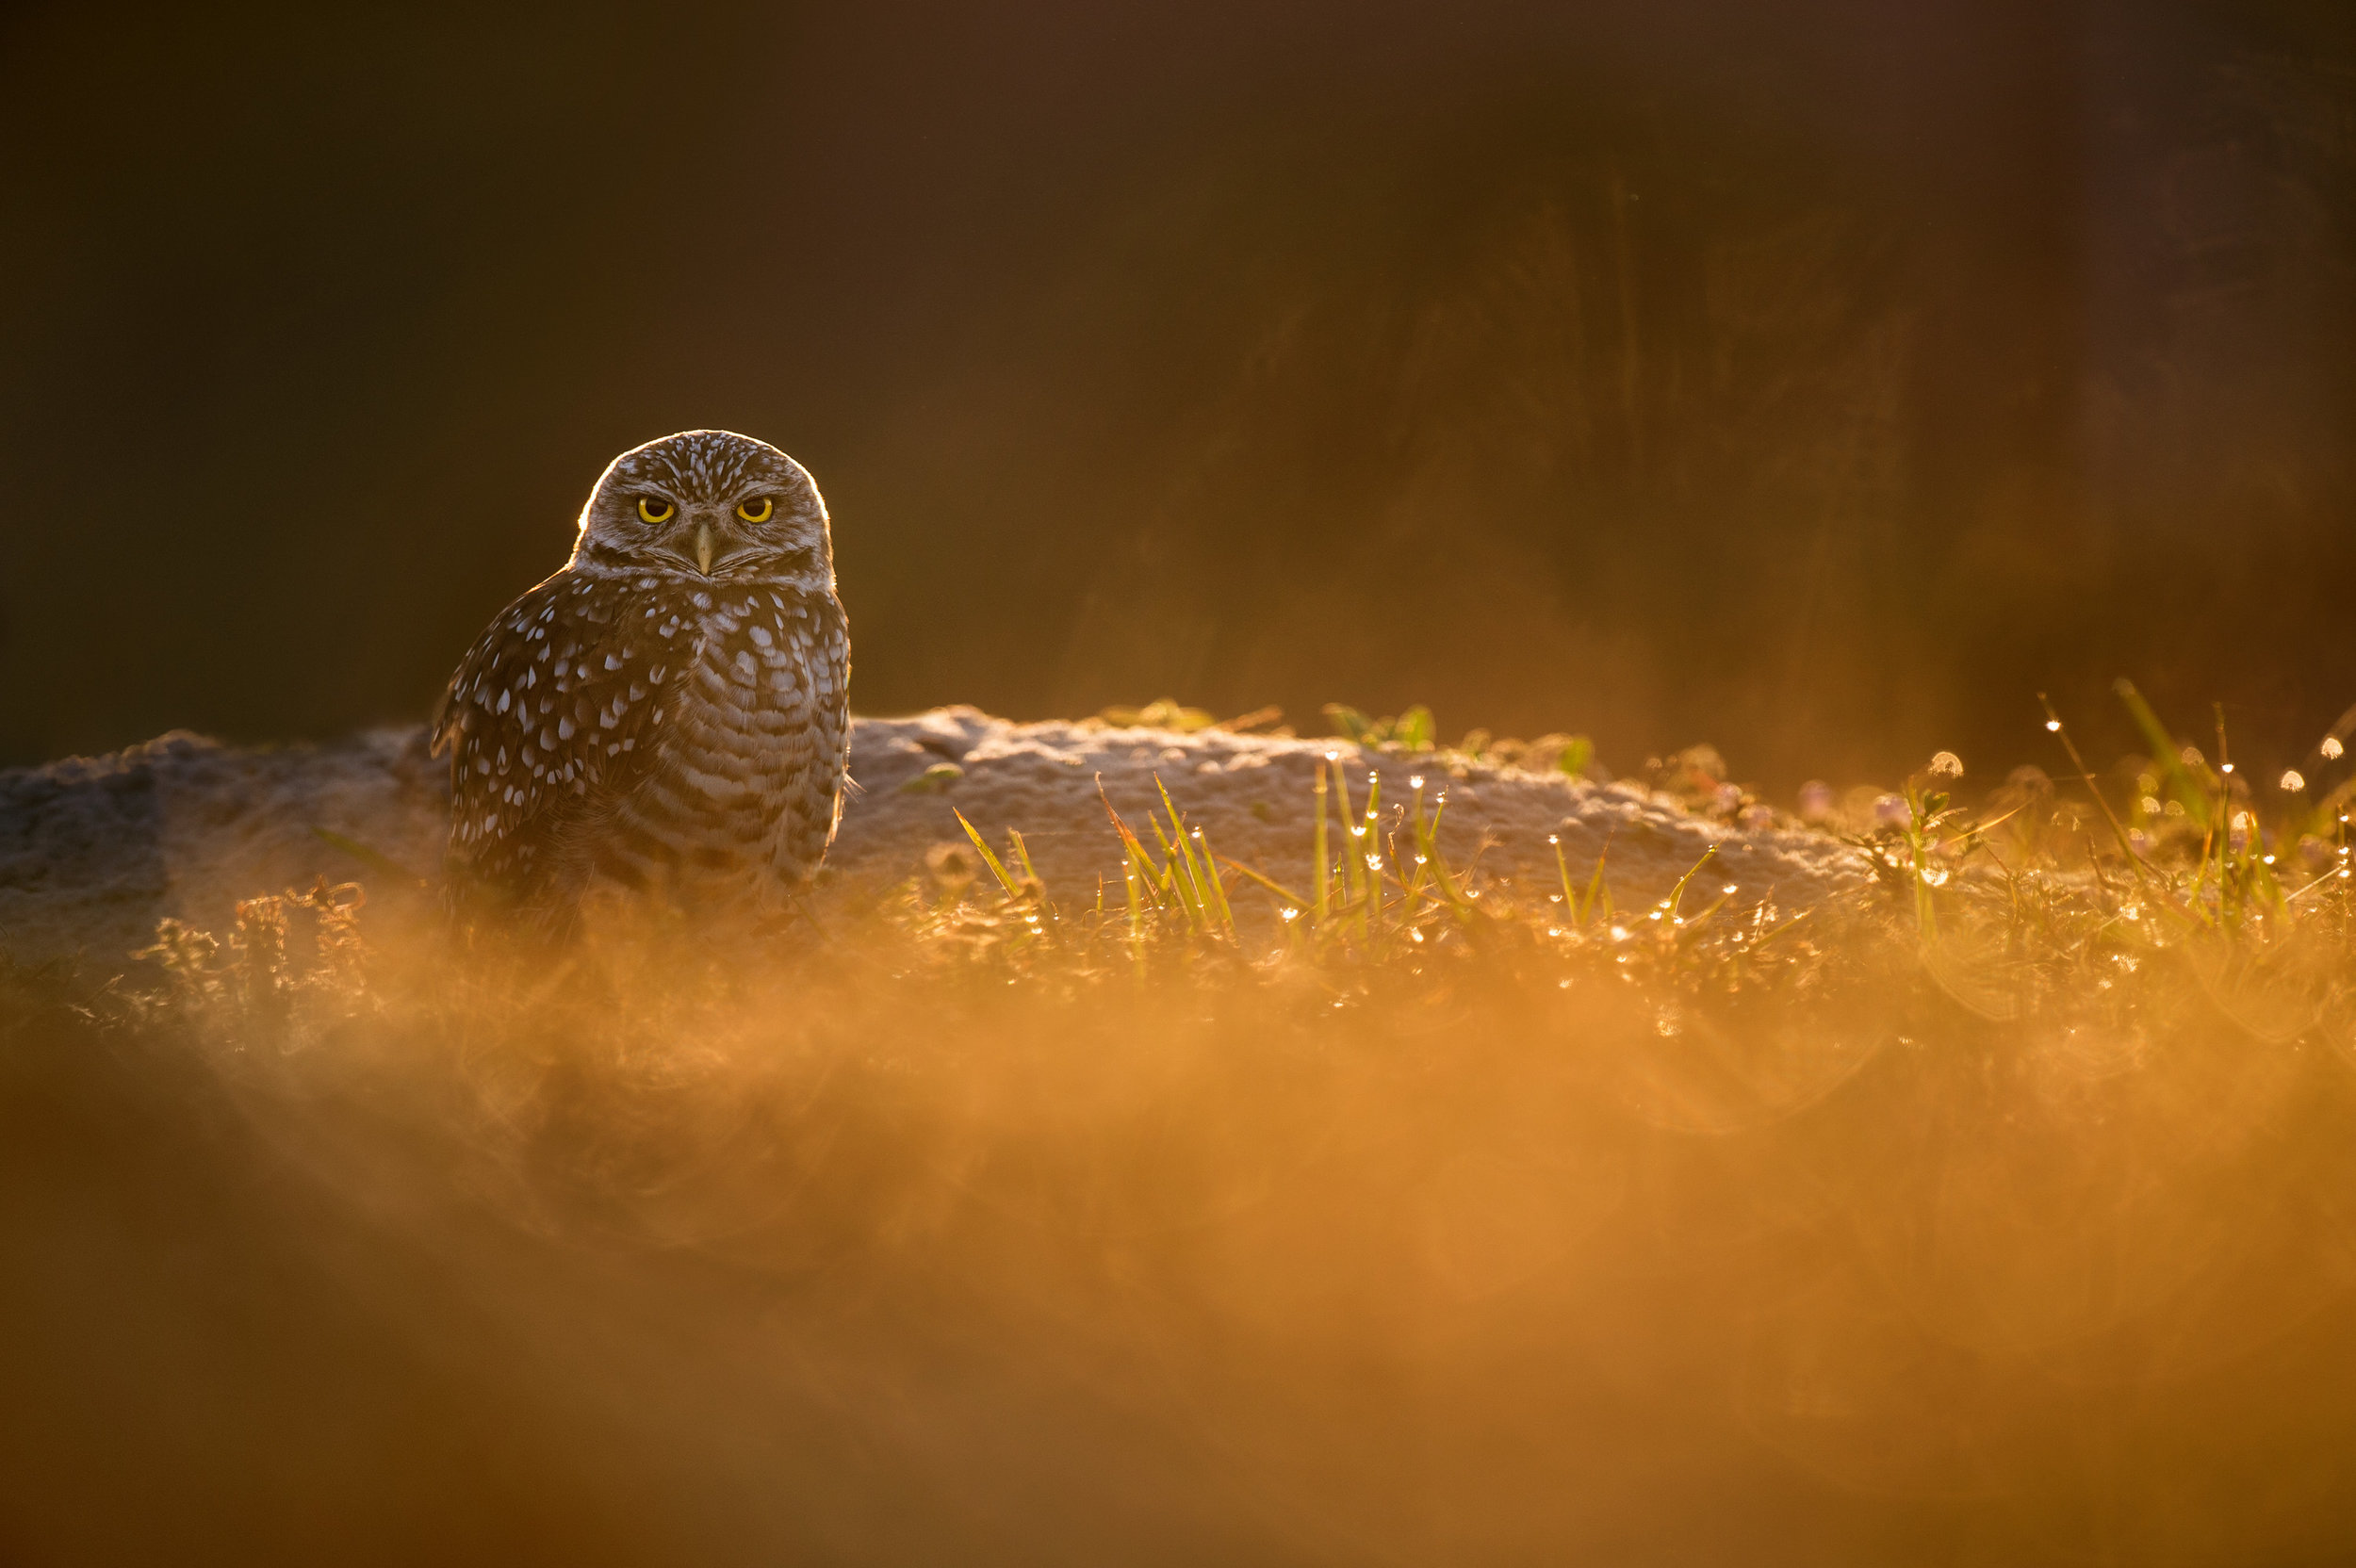 Moments after the sun came up from behind a nearby building I was able to get into position to photograph this Burrowing Owl glowing in the morning sun. I was sure to also include a lot of the foreground grasses for added color and to help draw the viewer's eye to the bird.